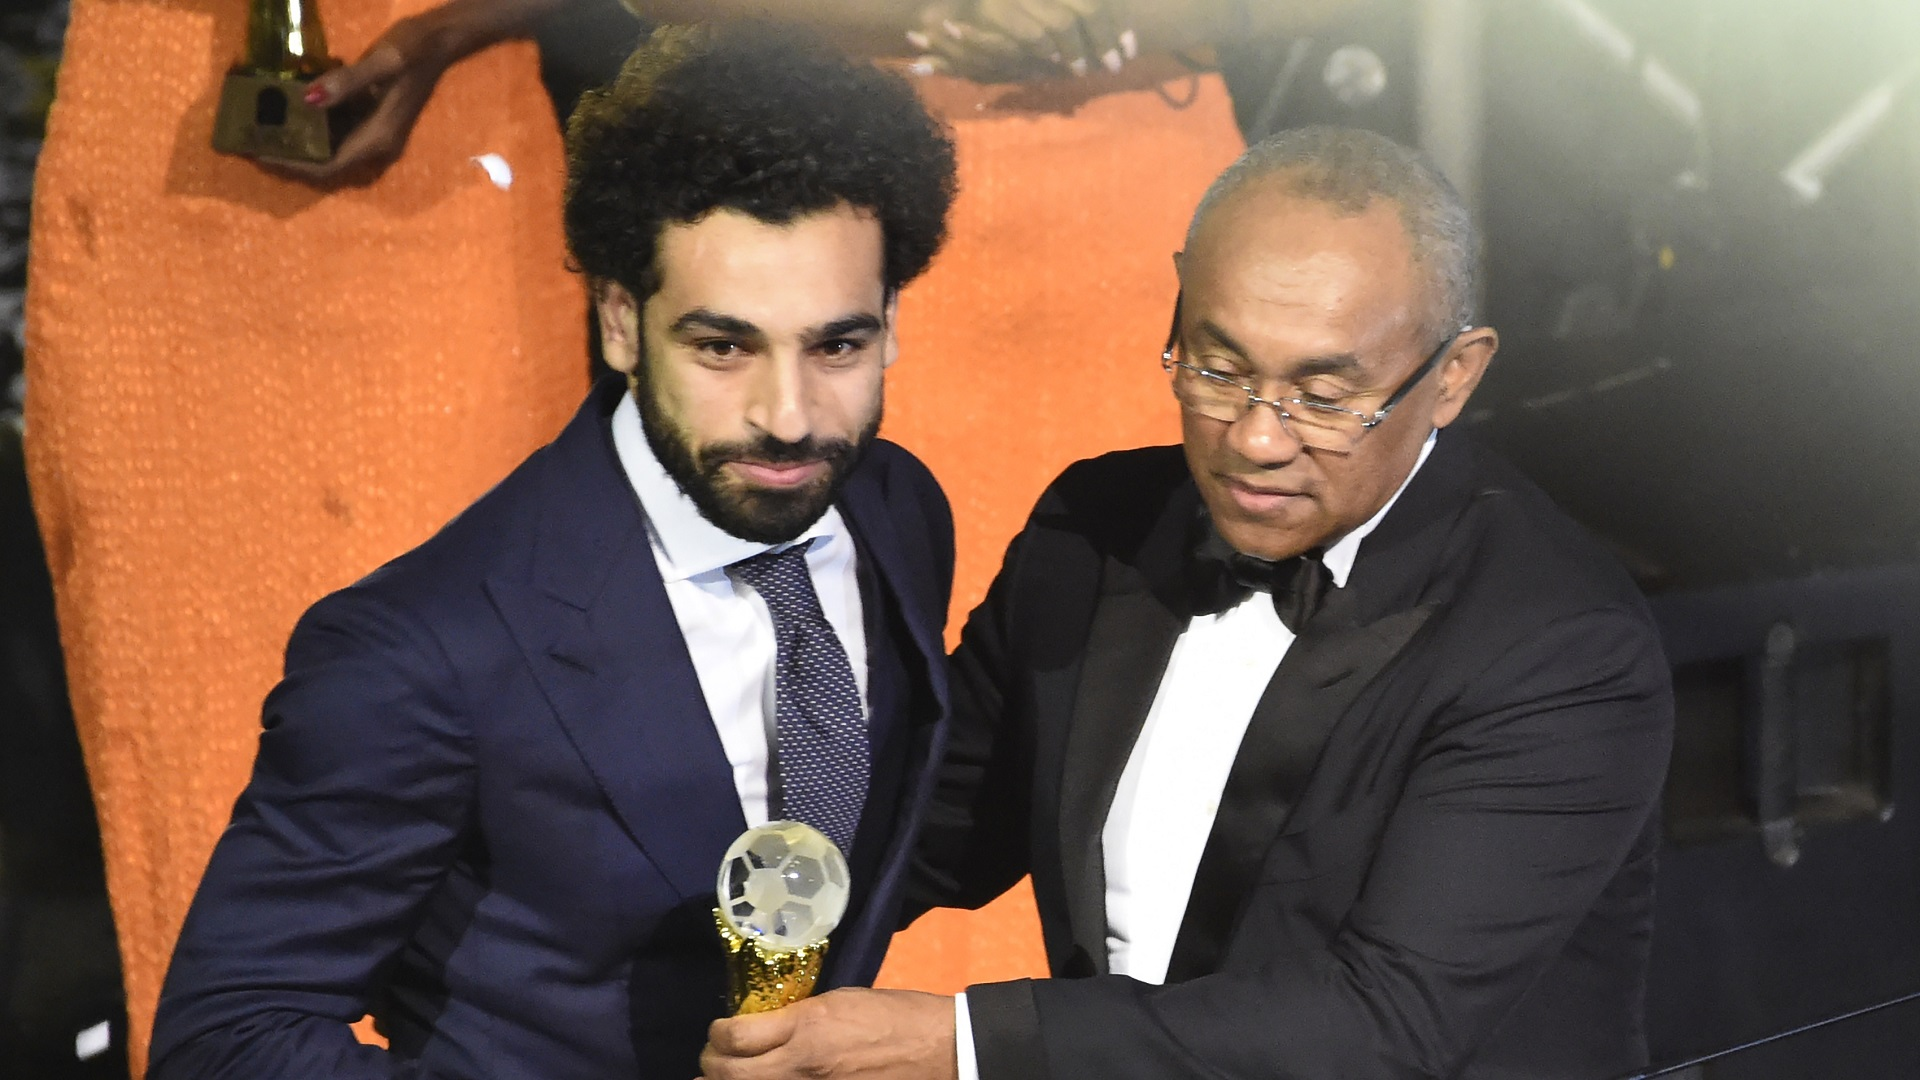 Mohamed Salah Ahmad Ahmad CAF Football Awards 2018